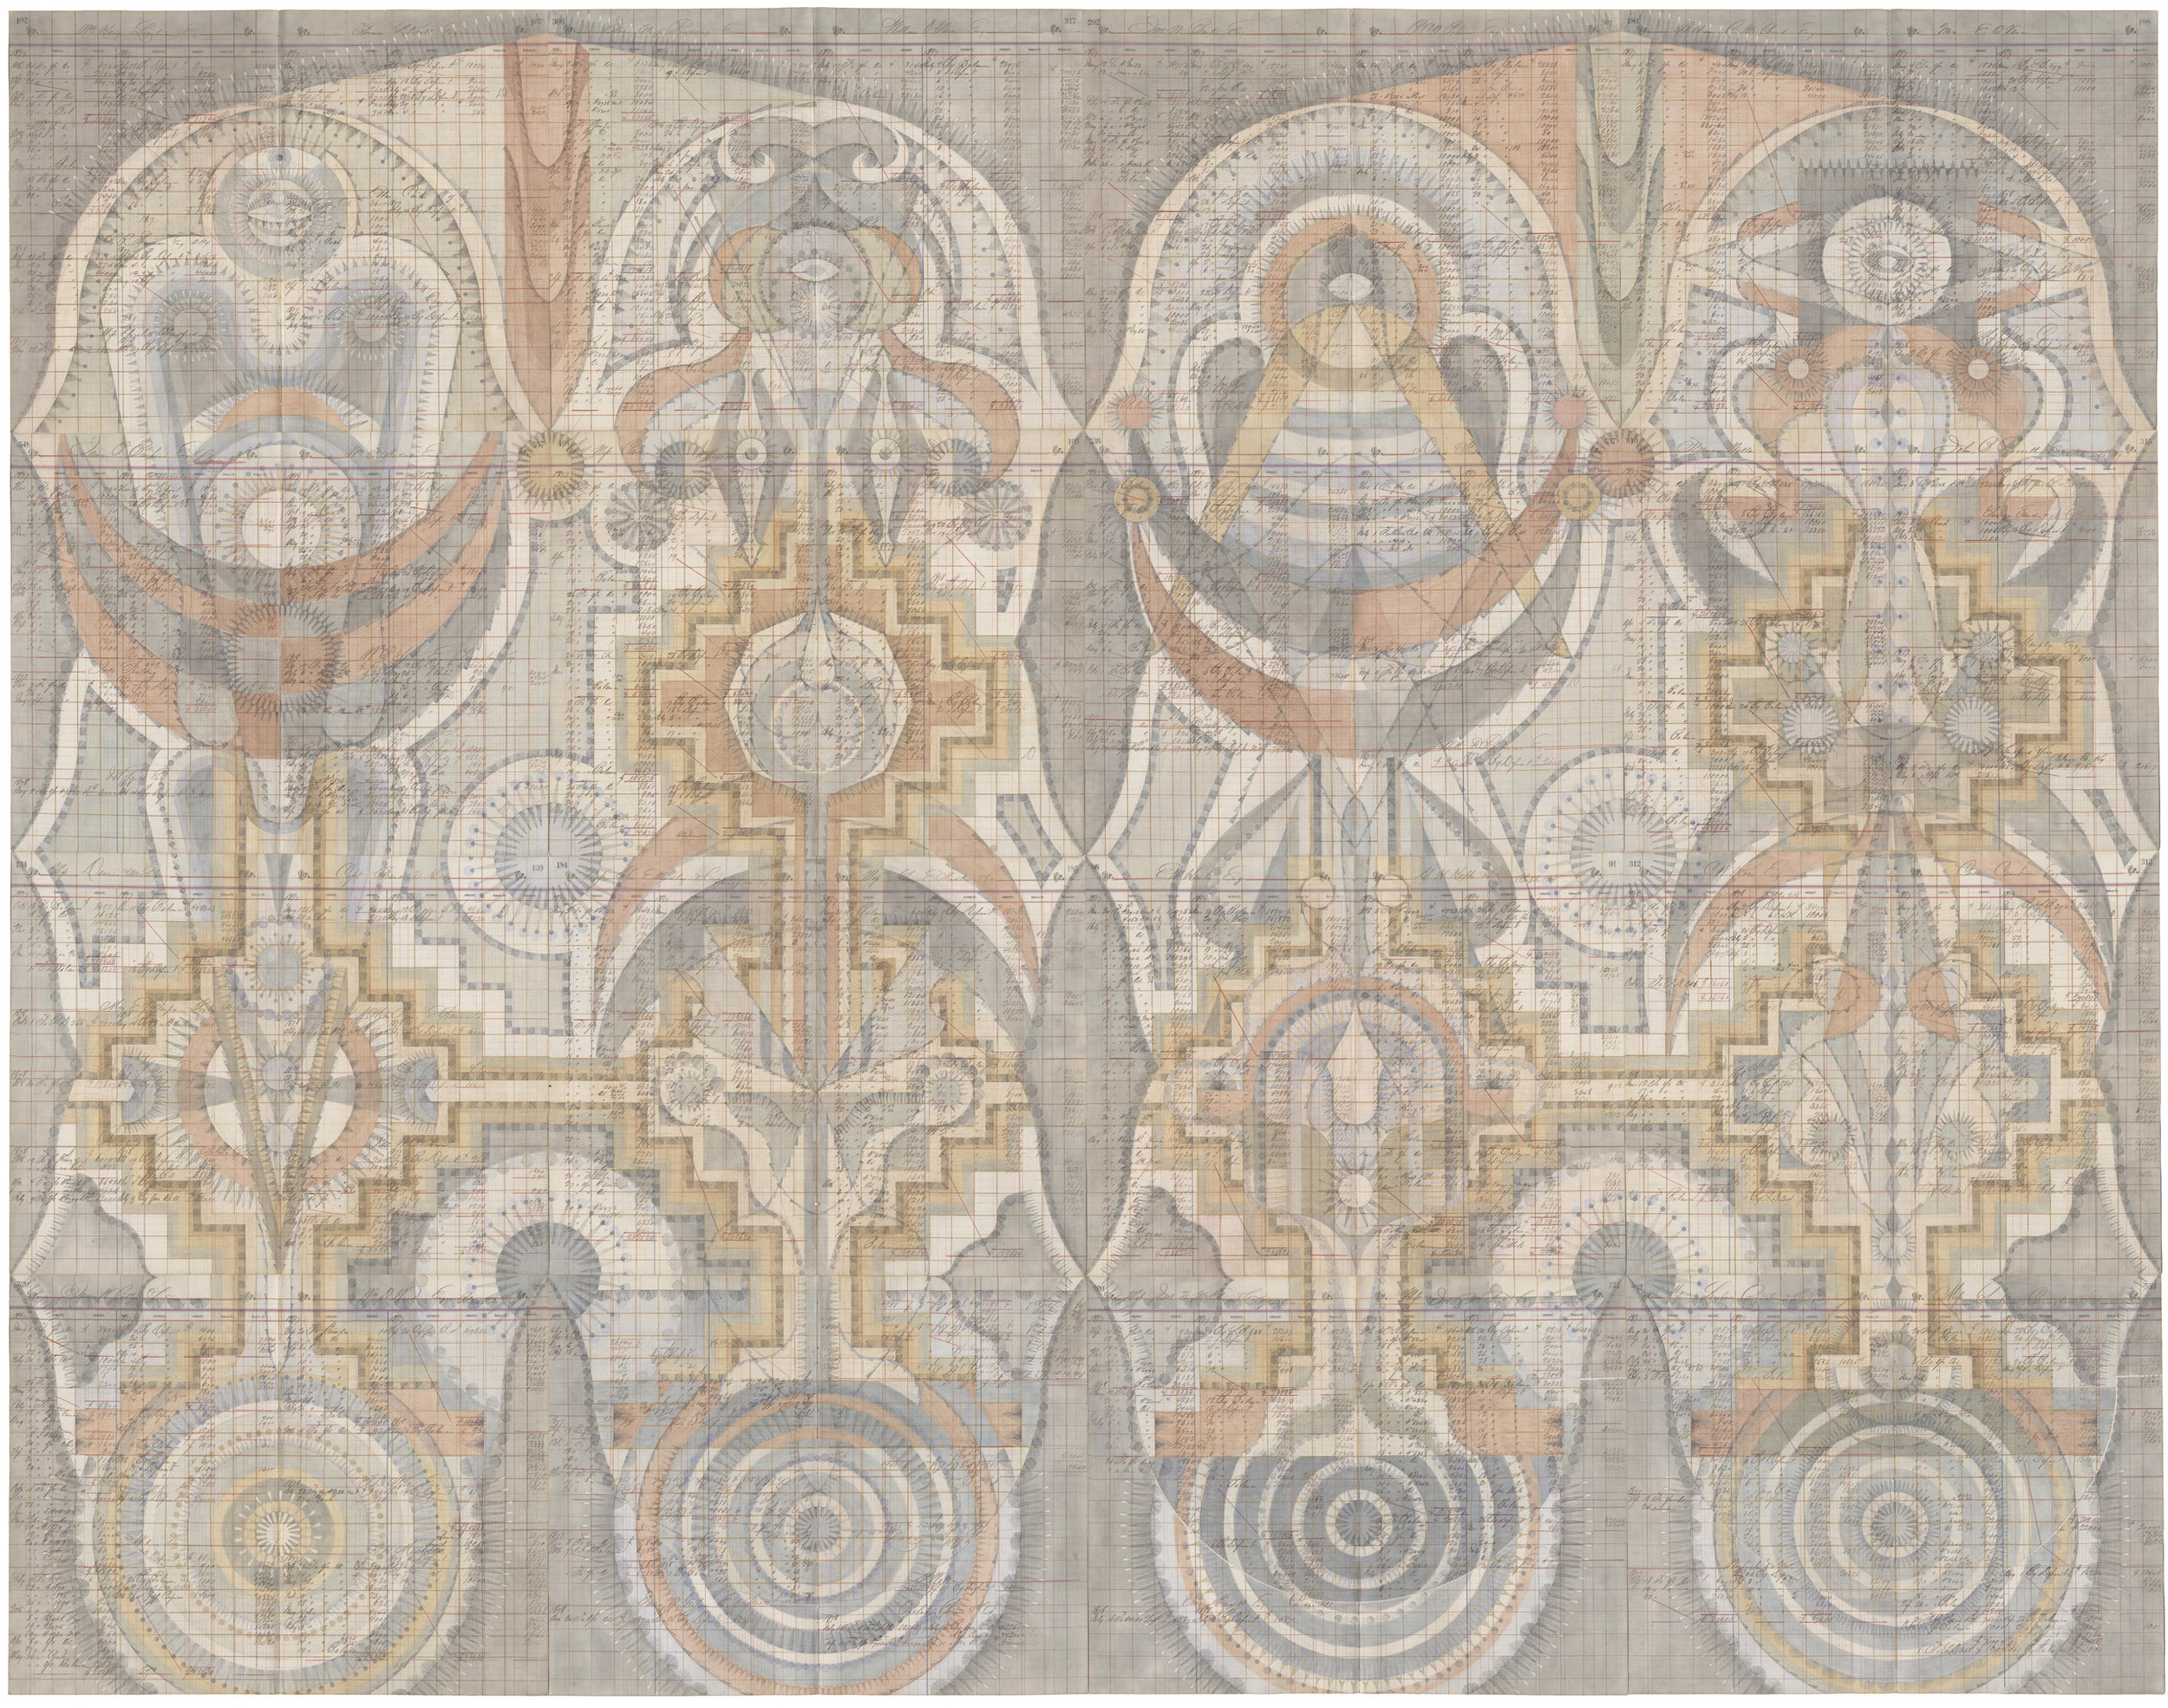 Stepwell Figures,Colored Pencil and Graphite on Antique Ledger Book Pages. 78 x 94.5 inches